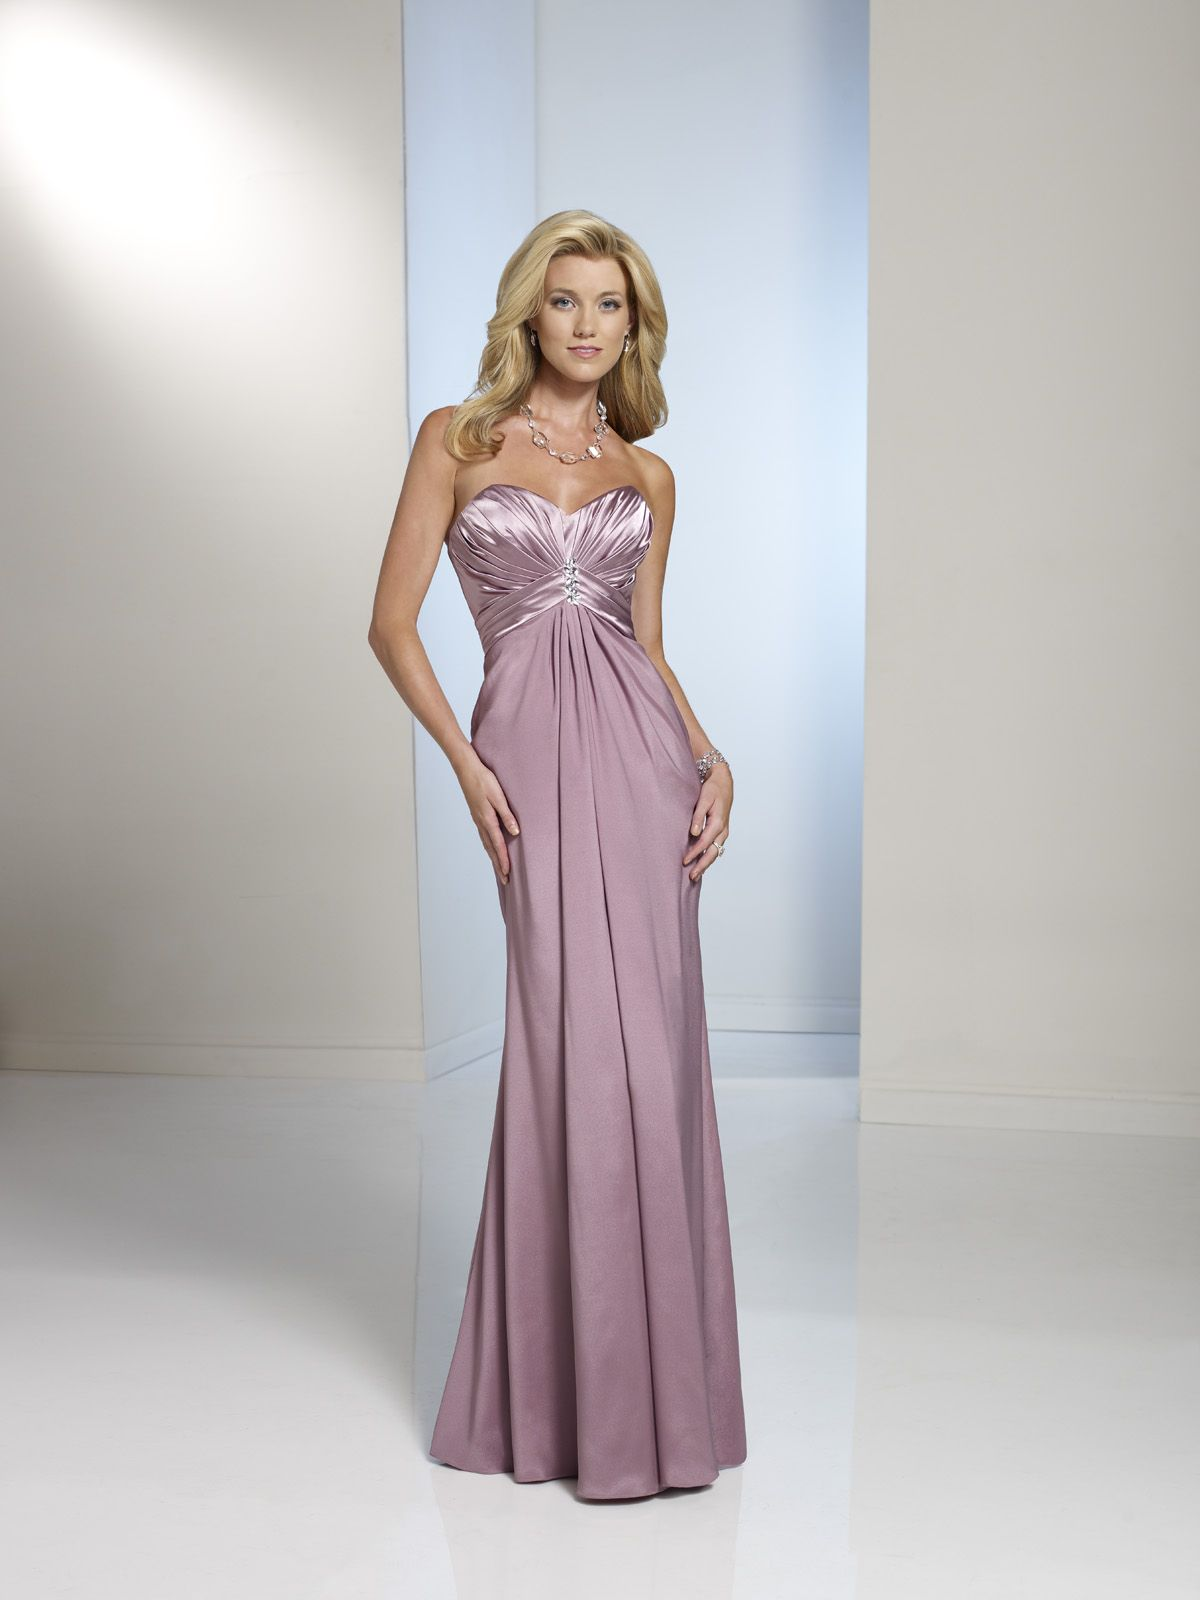 Bridesmaid Dress By Sophia Tolli Special Occasion Search Our Photo Gallery For Pictures Of Wedding Bridesmaids